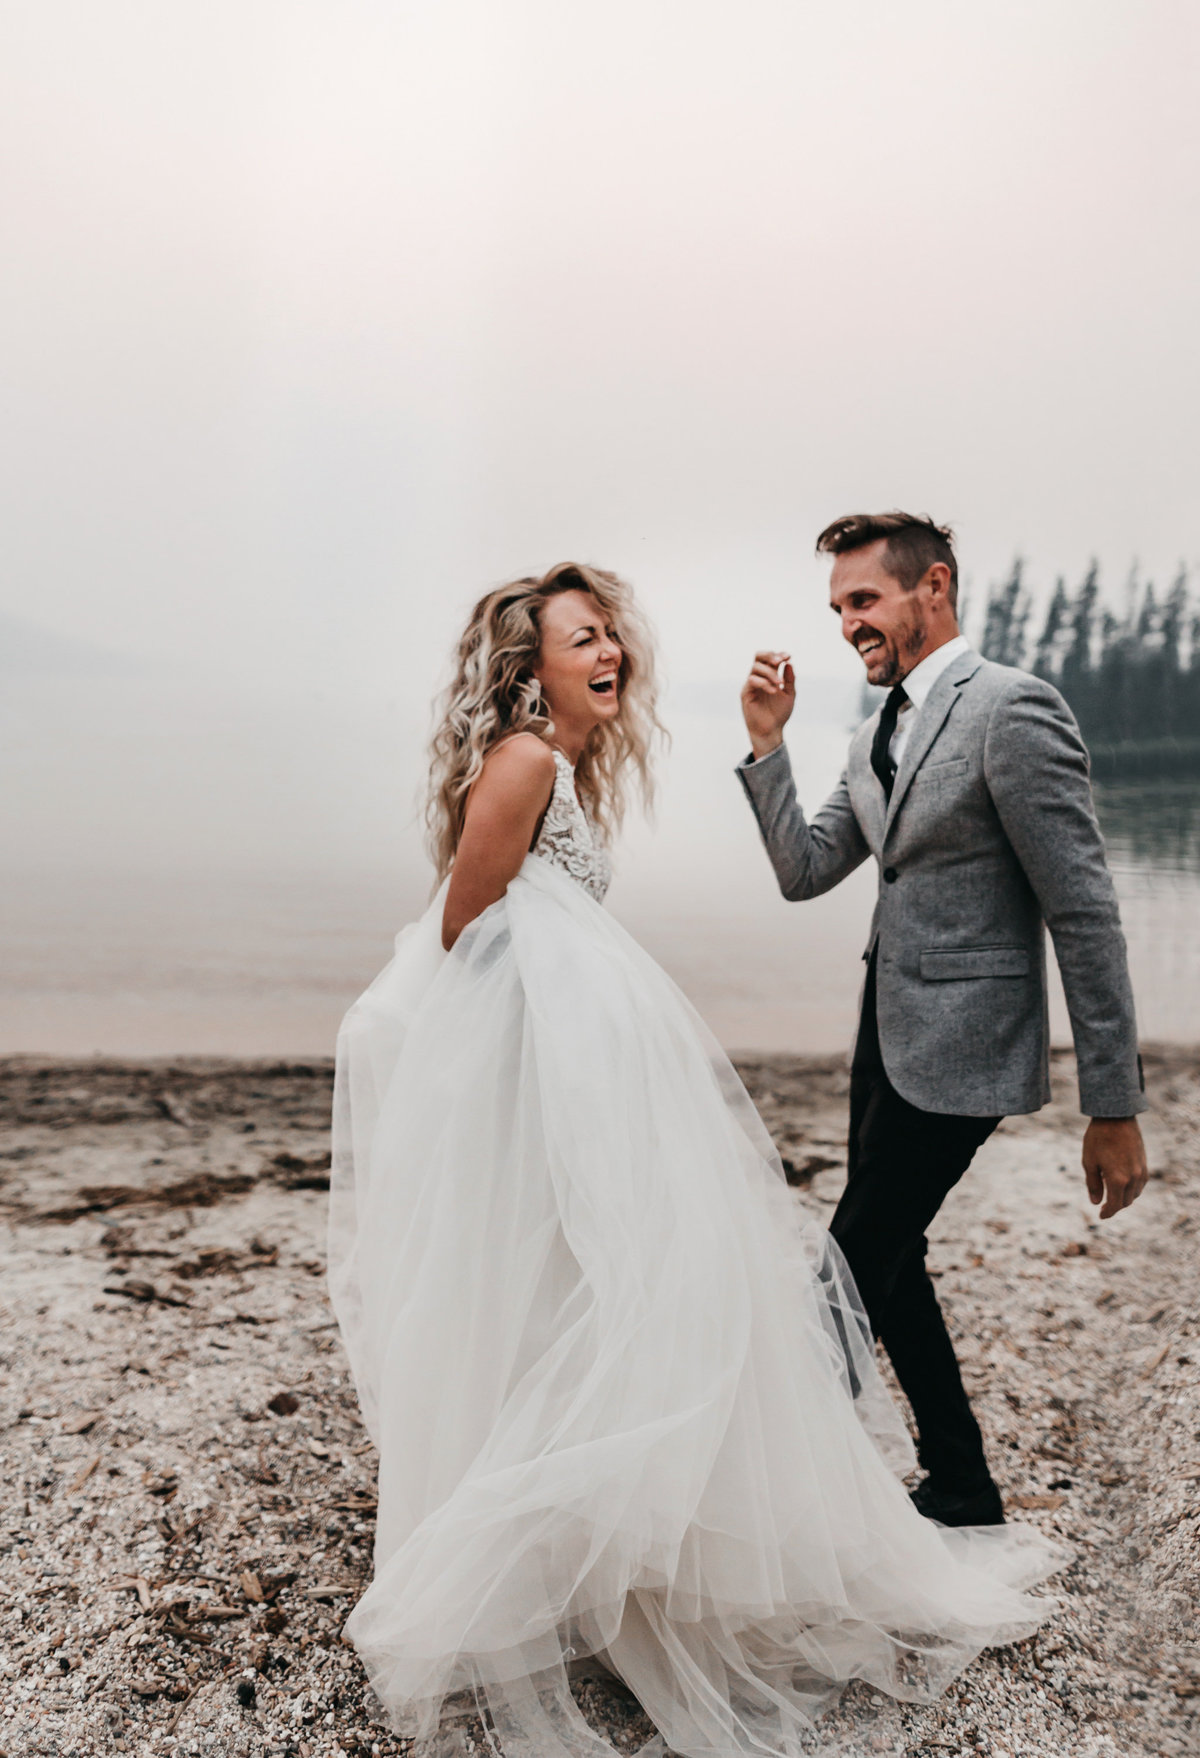 athena-and-camron-sara-truvelle-bridal-wenatchee-elopement-intimate-23-wedding-dress-dance-laugh-fun